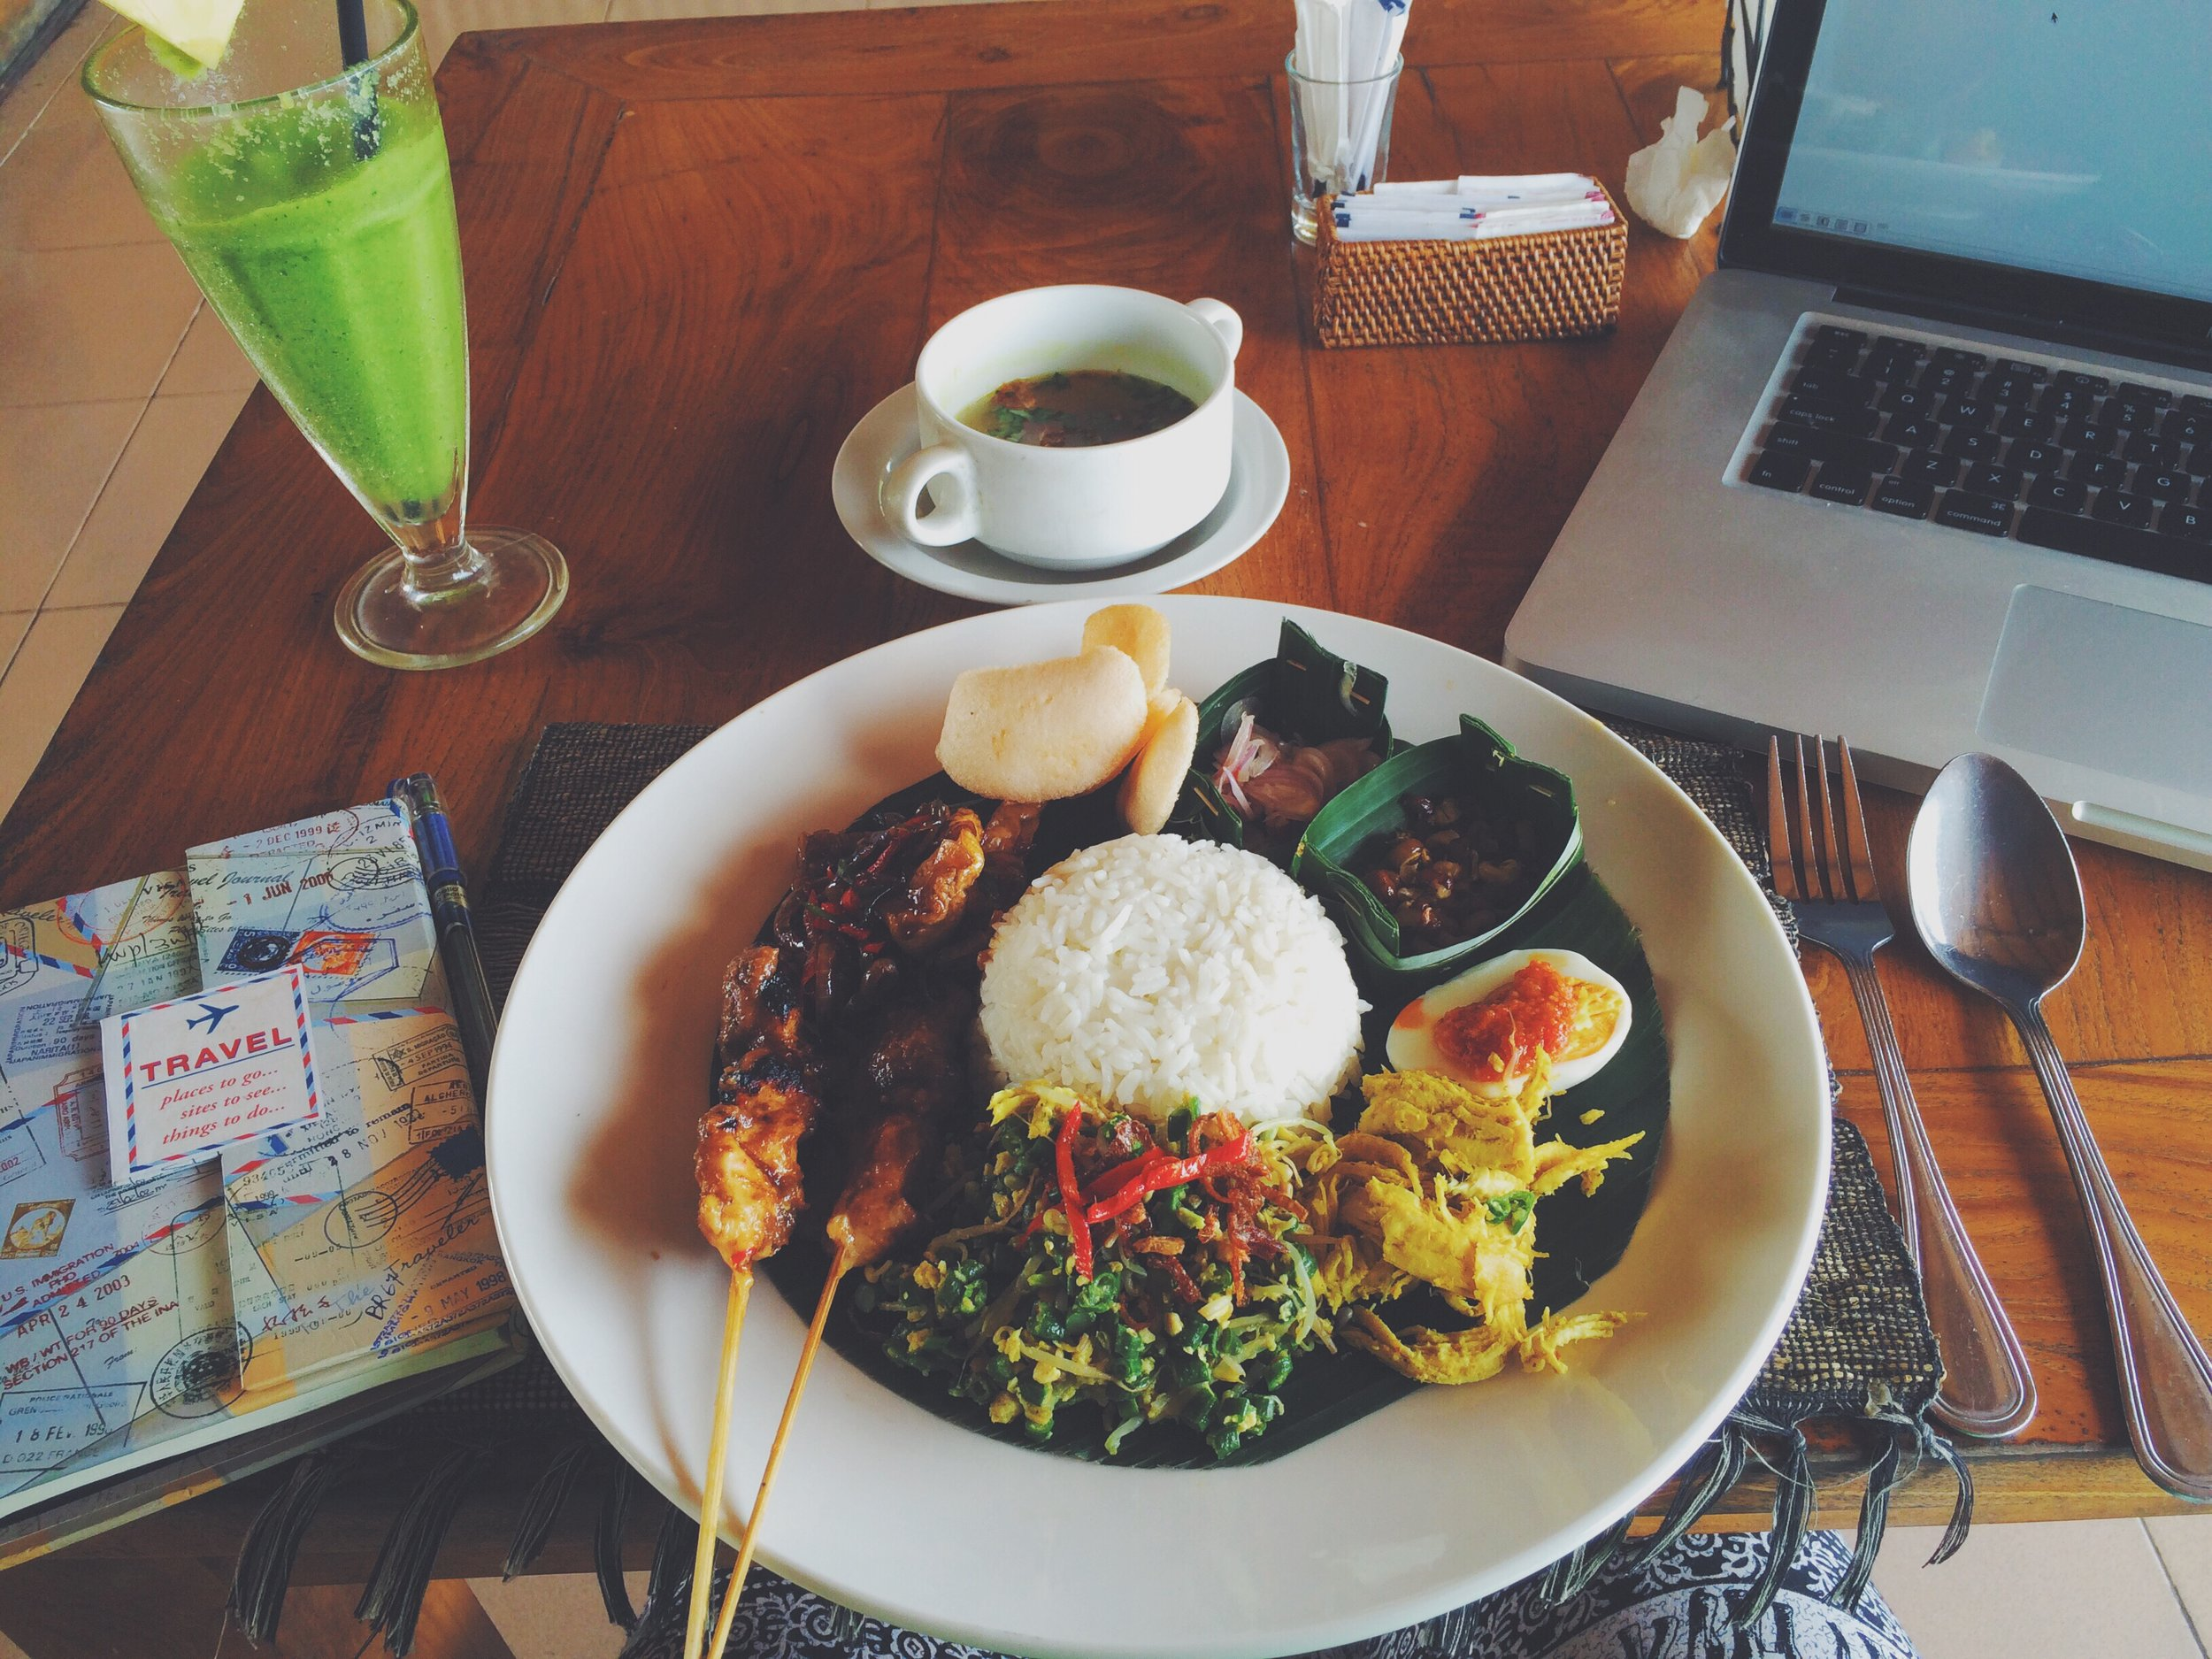 Journal, juice, lunch, laptop are part of the Bali experience for me